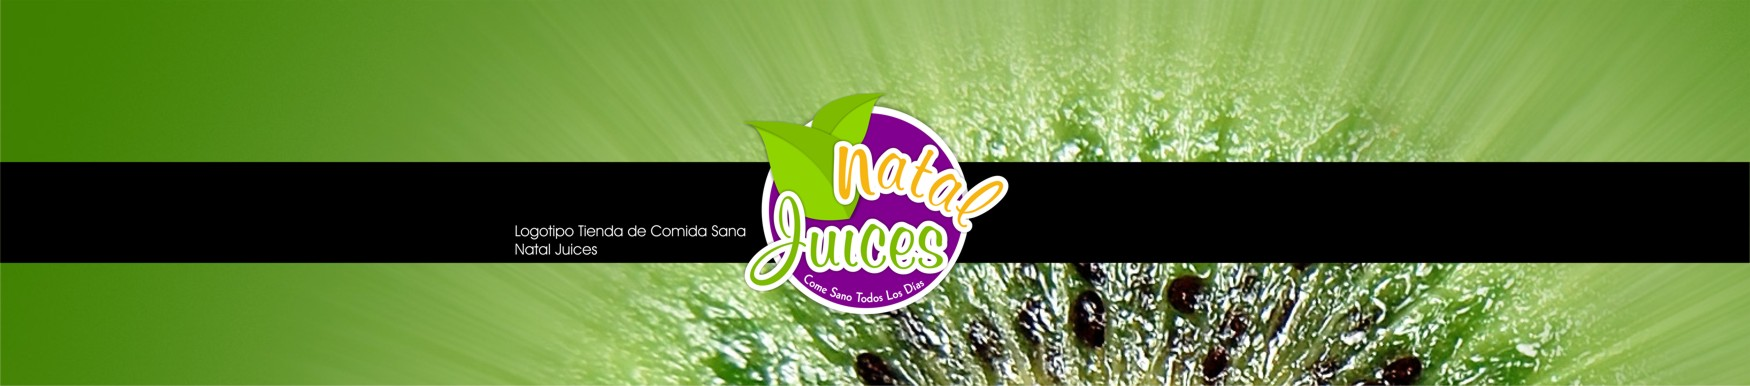 Logotipo Natal Juices